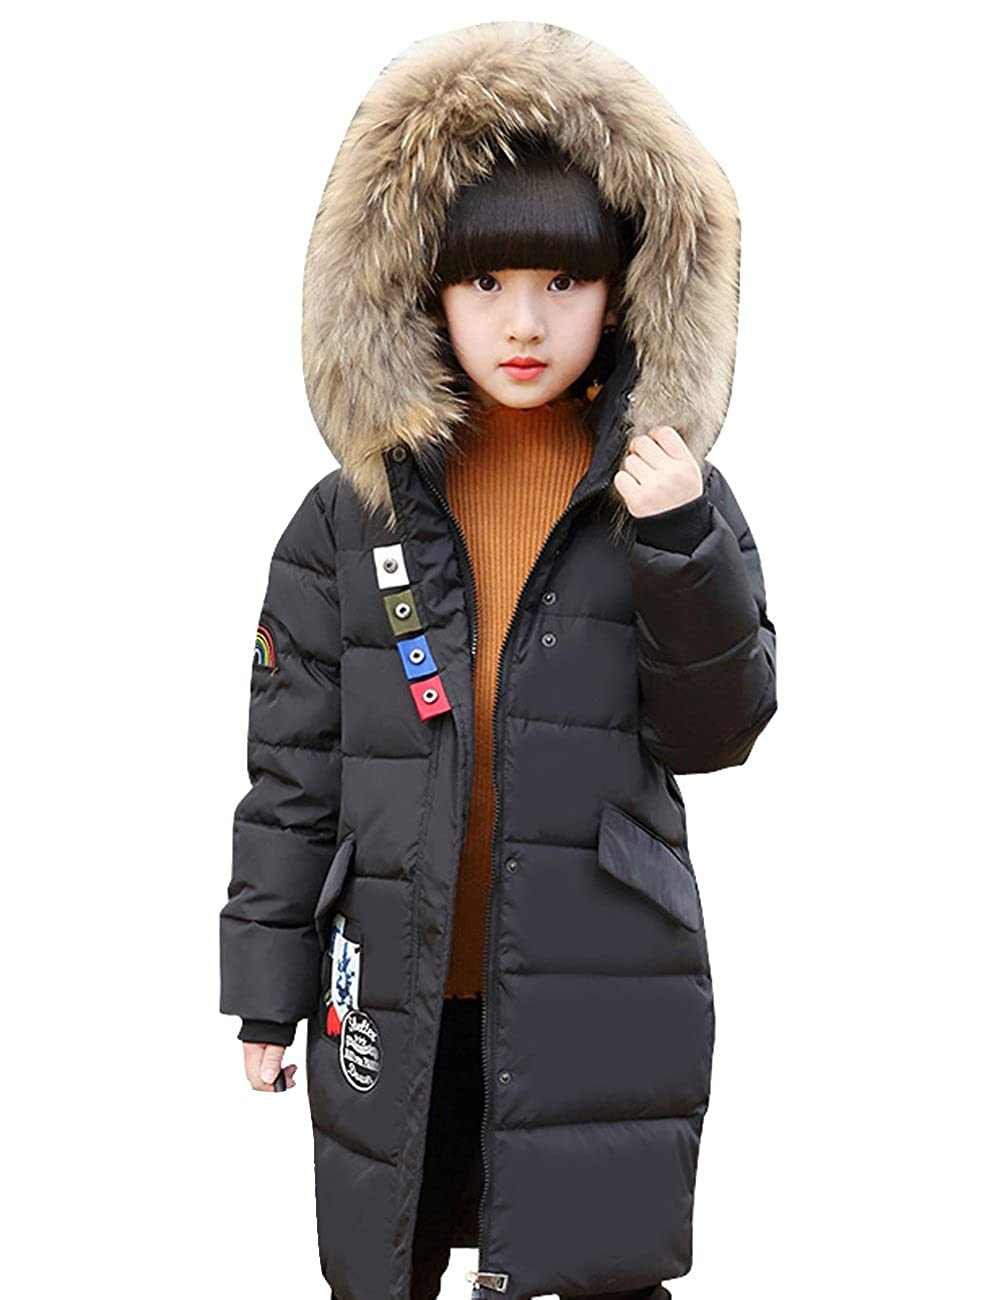 CUKKE Girl's Down Jacket Hooded Winter Warm Coat (150, Black) wuxi shuailande trade CK-YHQ-8832-BLCK-150